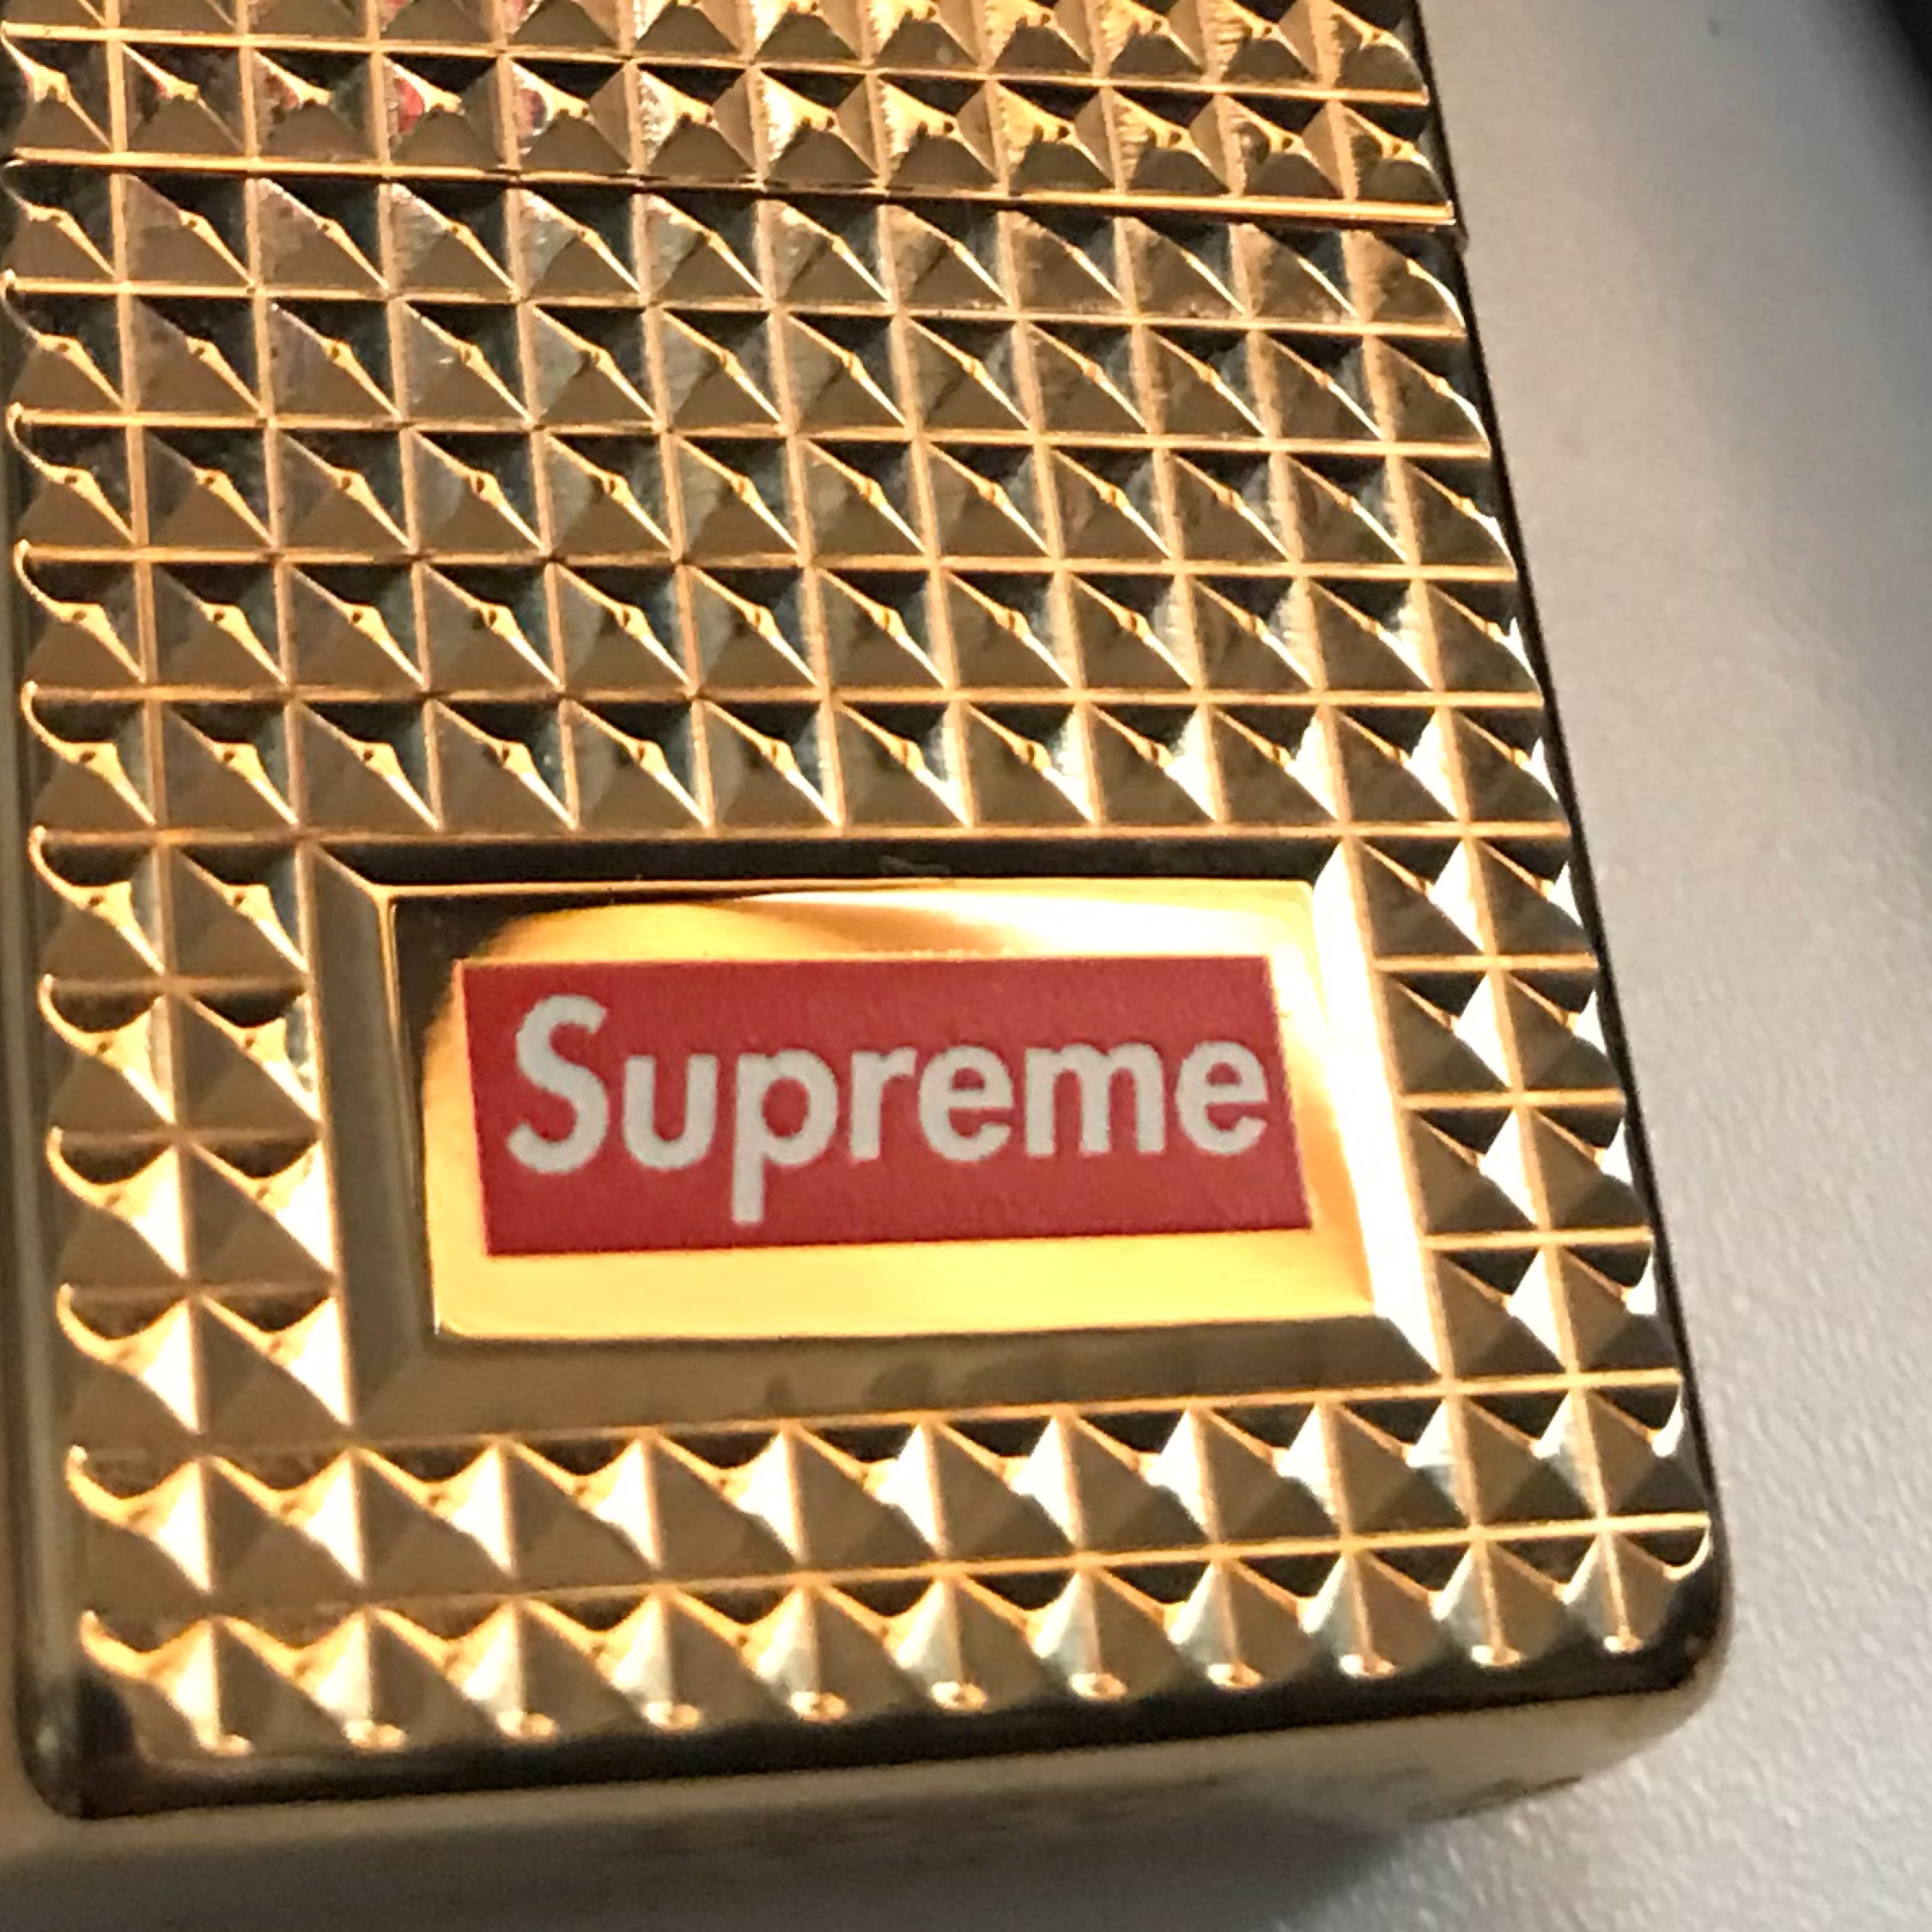 Fw17 Supreme Zippo Diamond Cut Armor Case Lighter